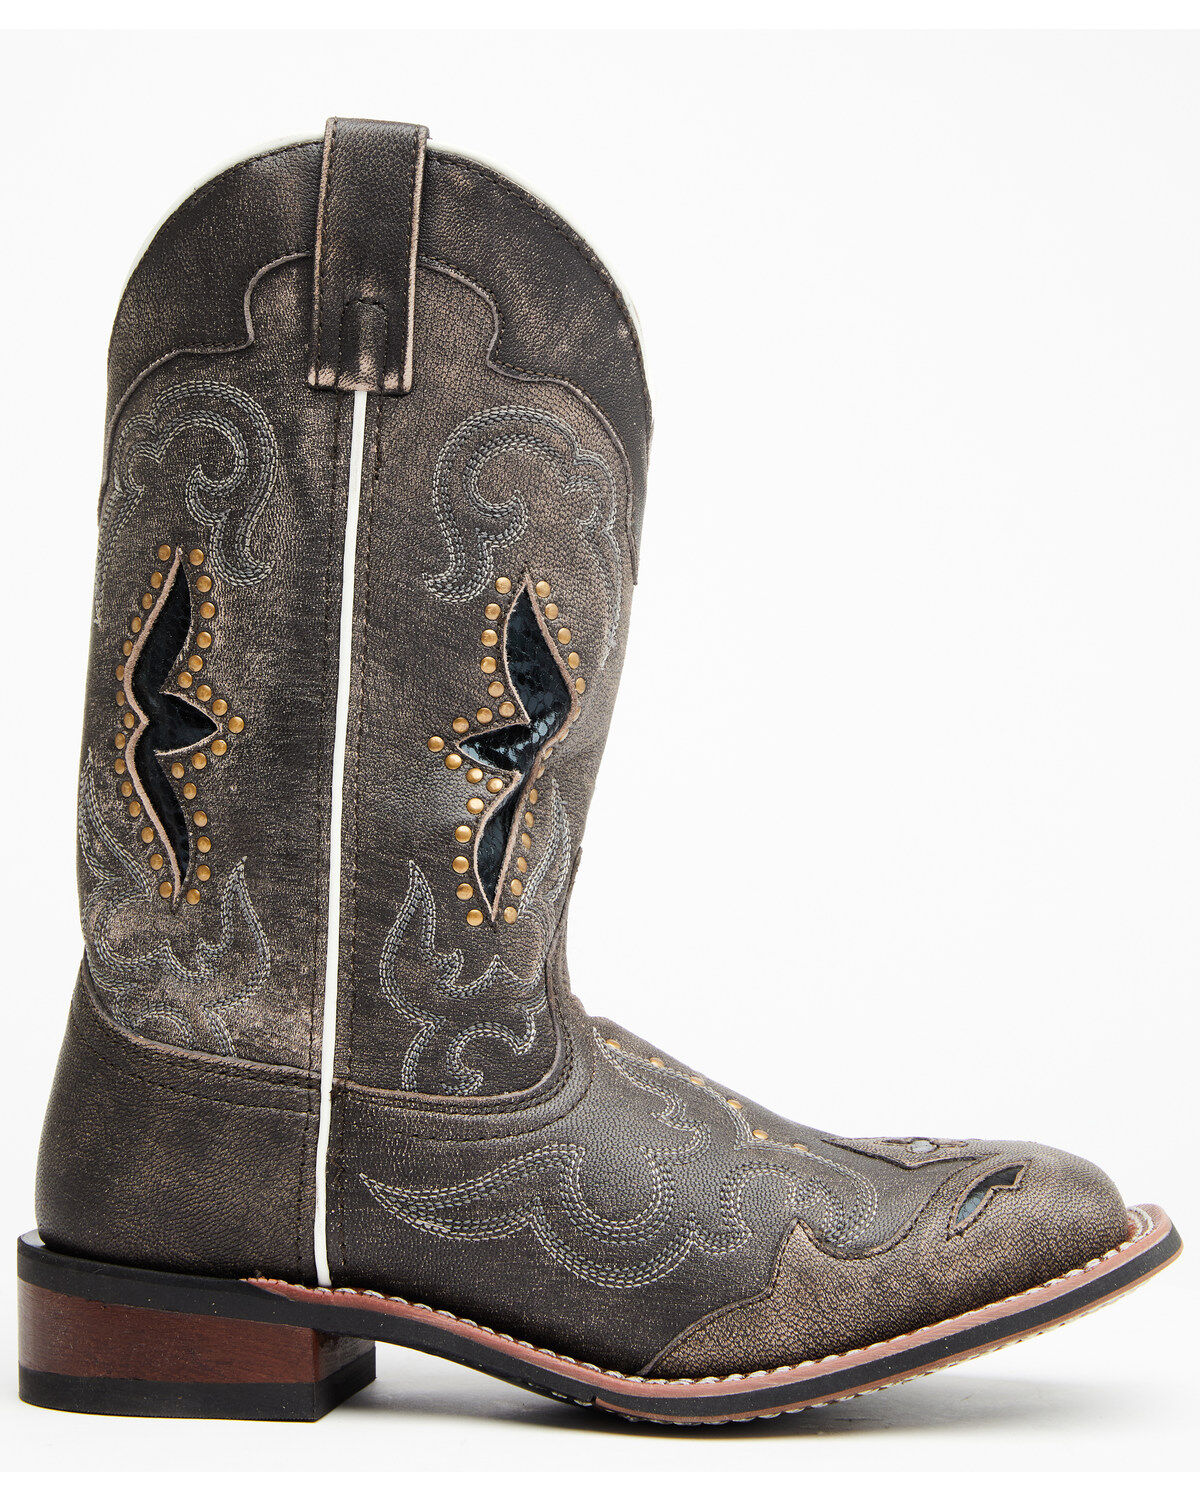 Spellbound Goat Skin Boots   Boot Barn